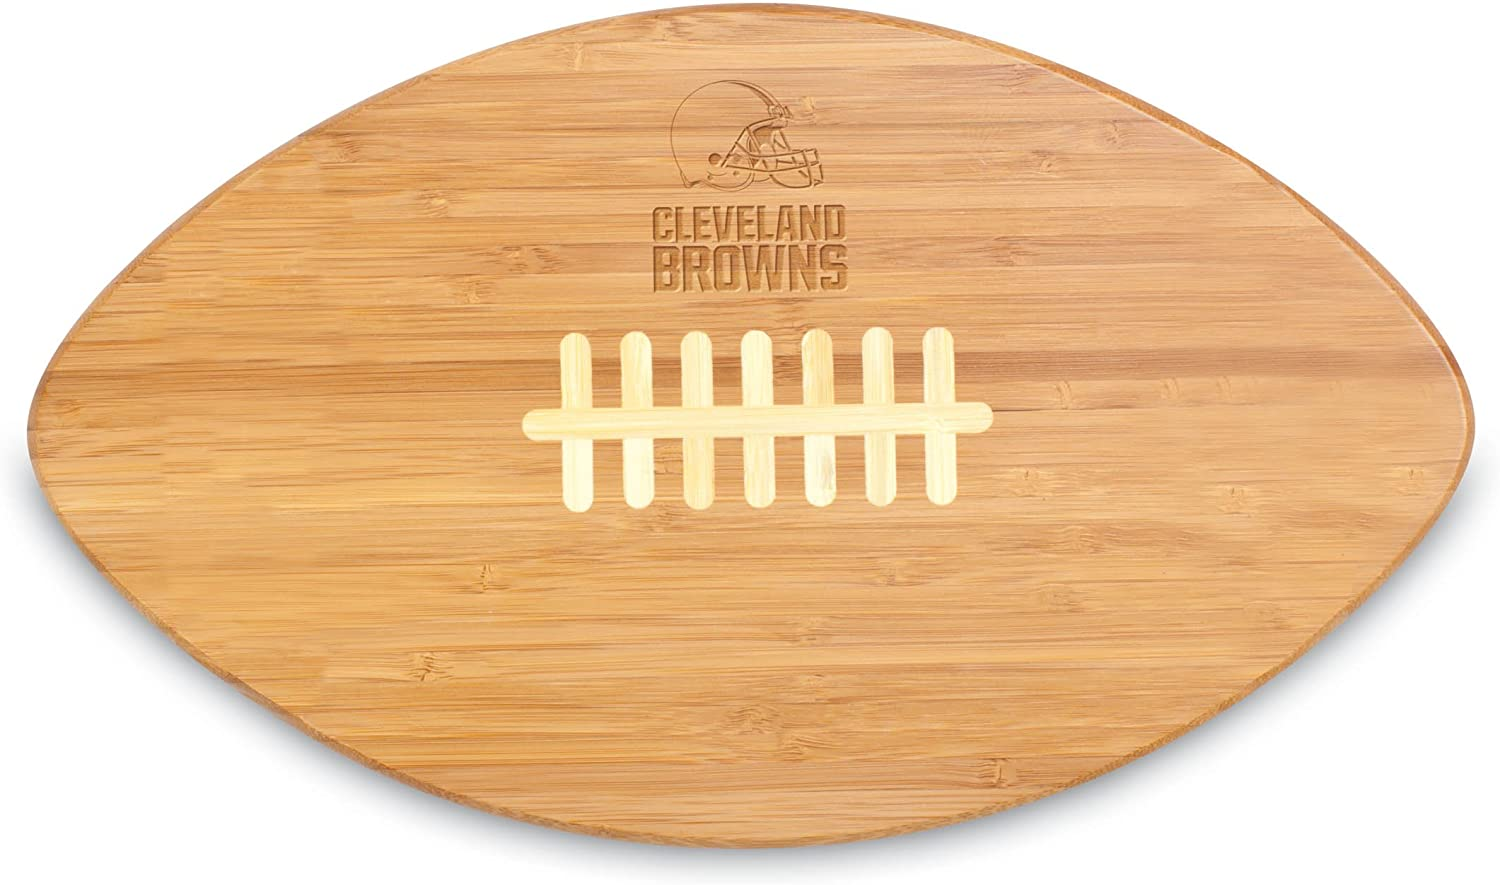 NFL NEW before selling Cleveland Browns Touchdown Pro Board 16-Inc supreme Cutting Bamboo